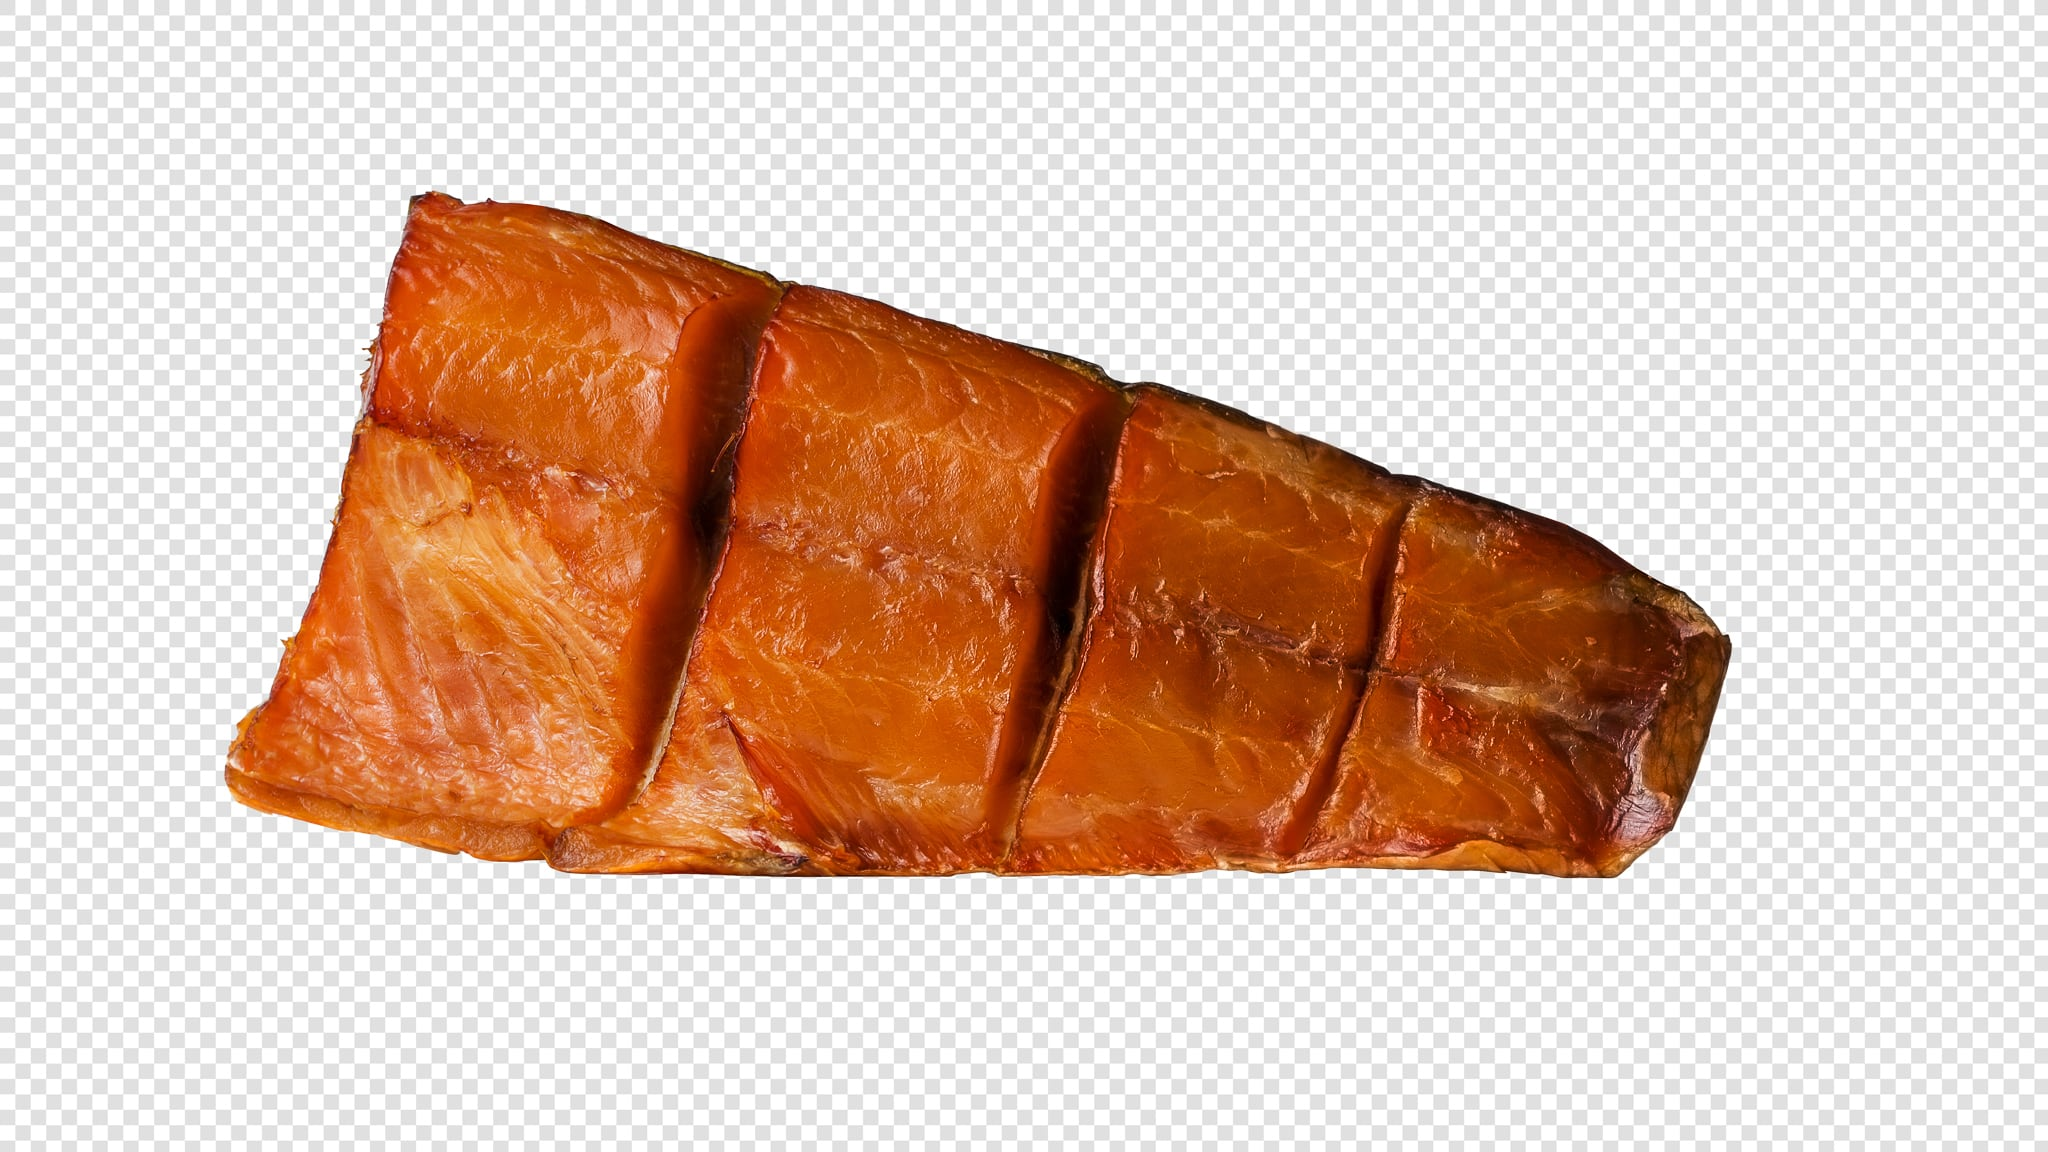 Fish image with transparent background